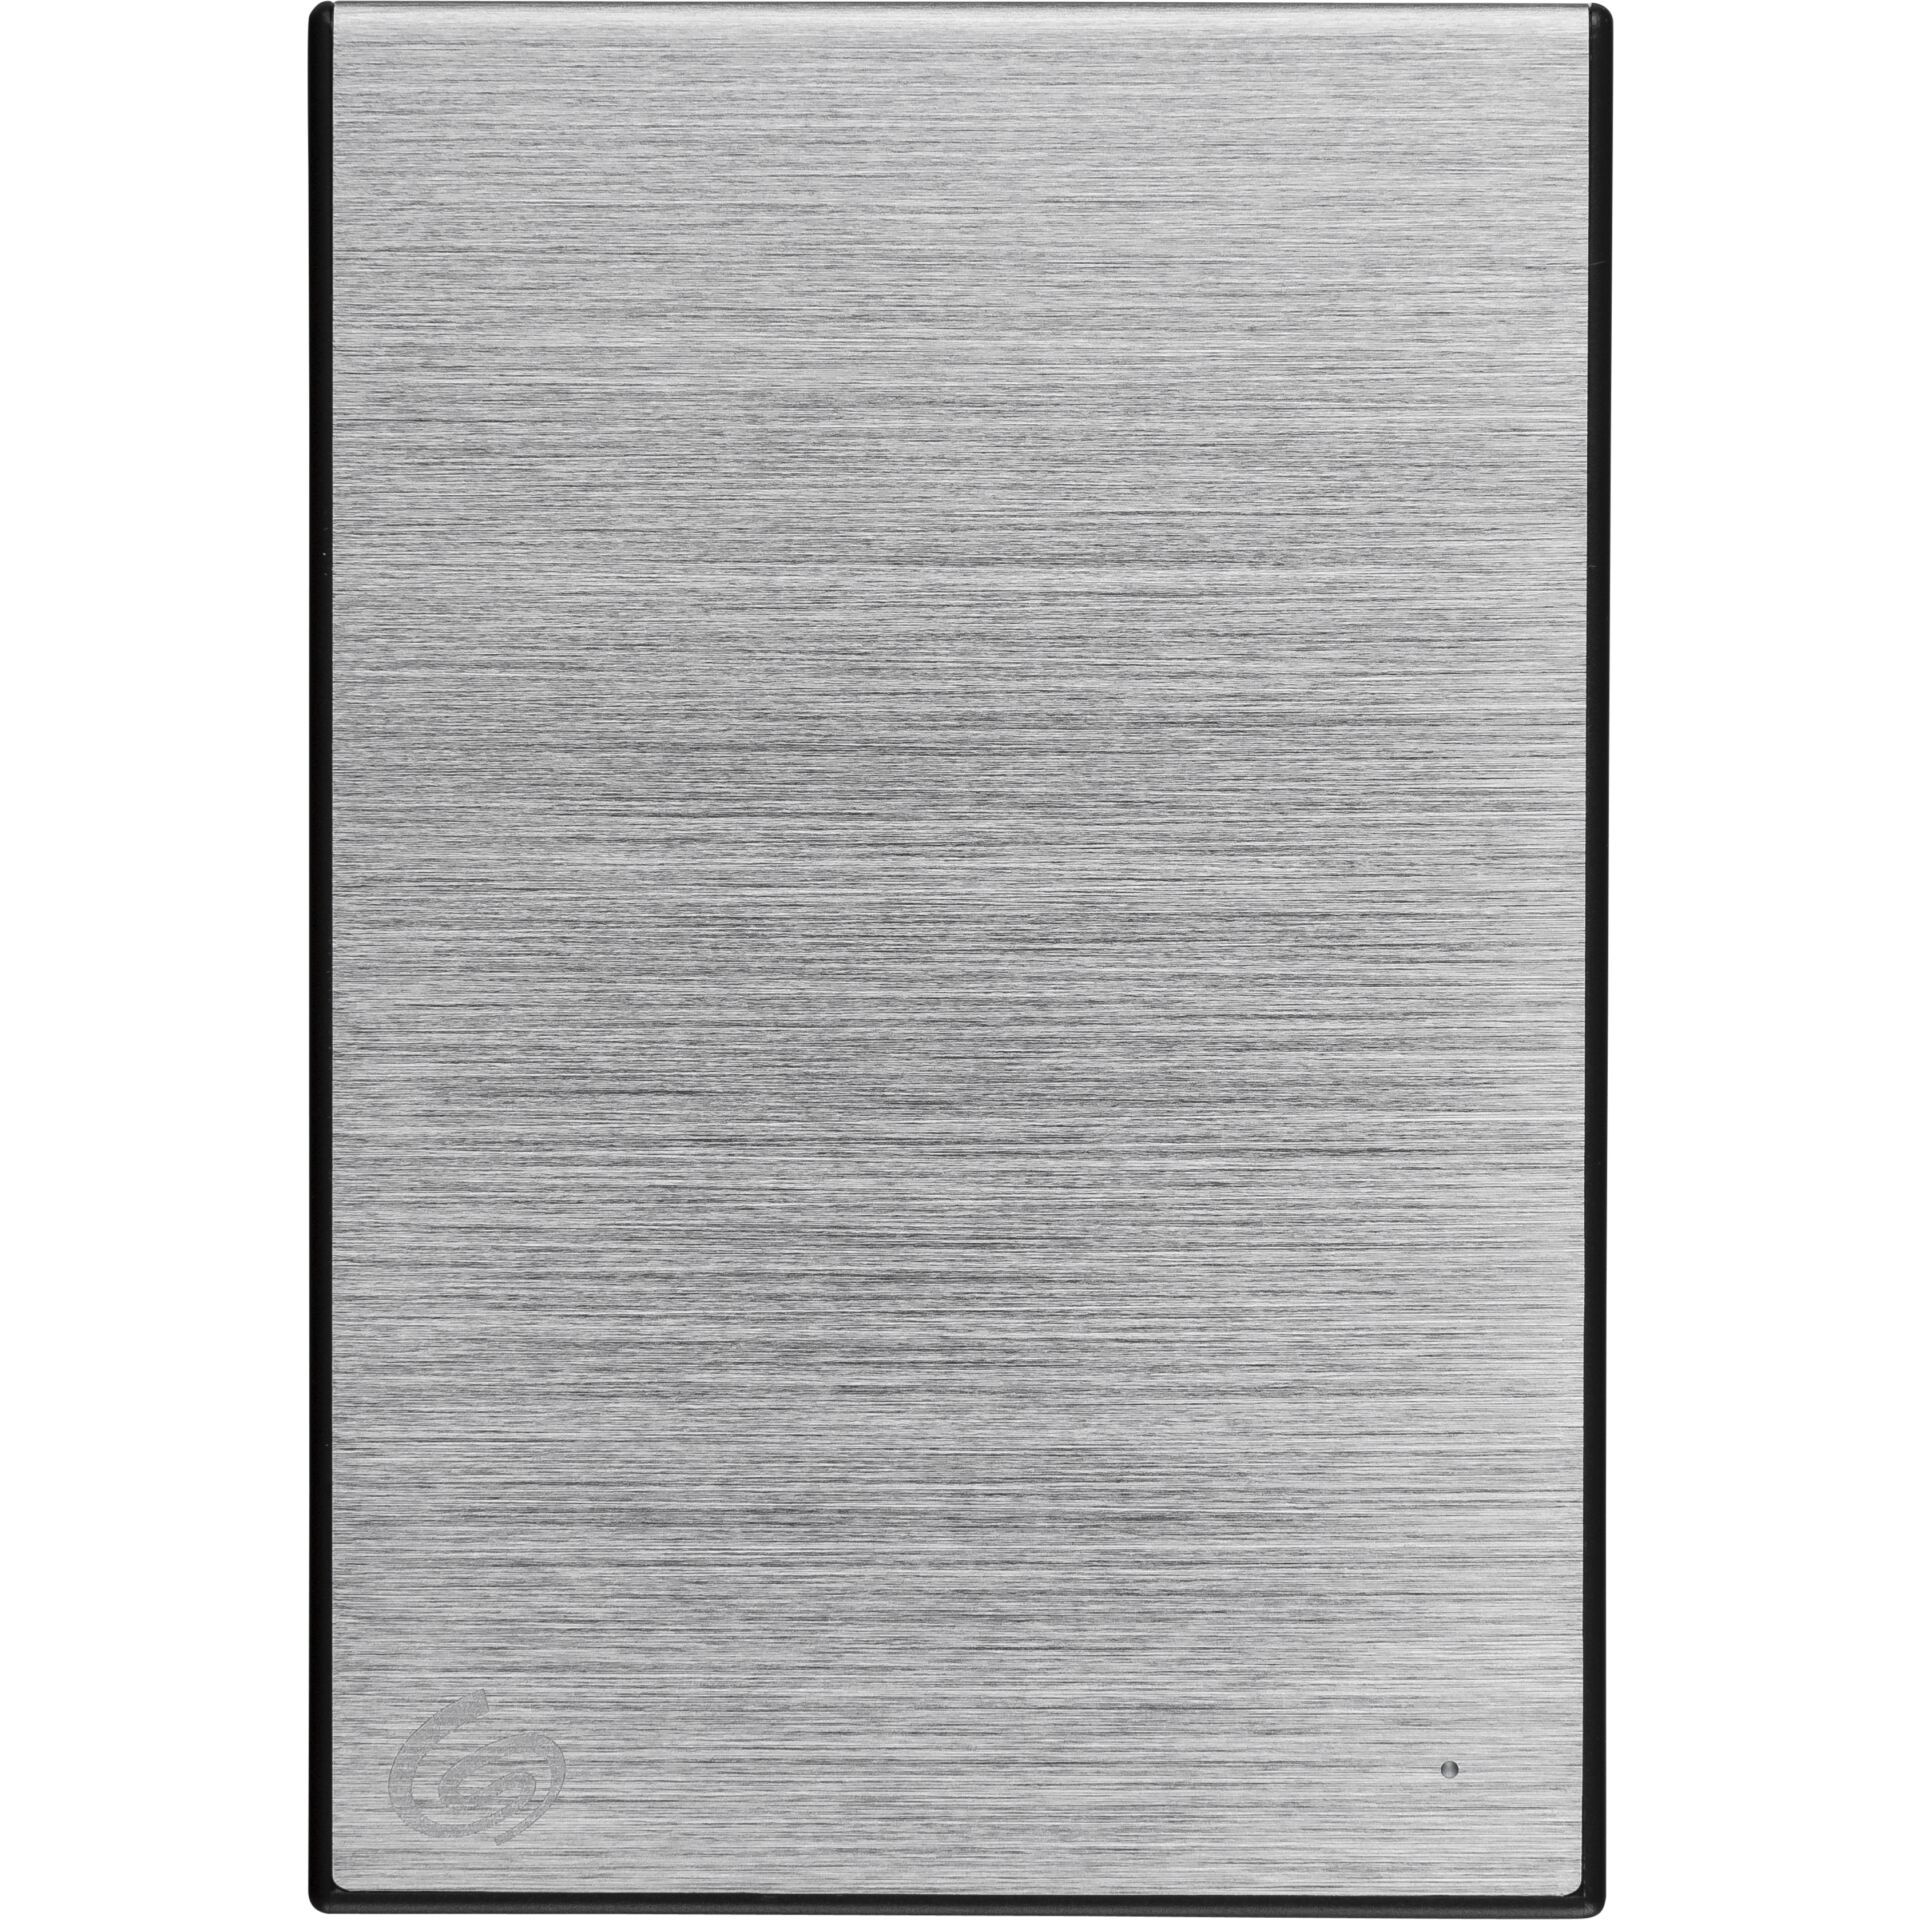 Seagate One Touch portable 2TB Silver USB 3.0